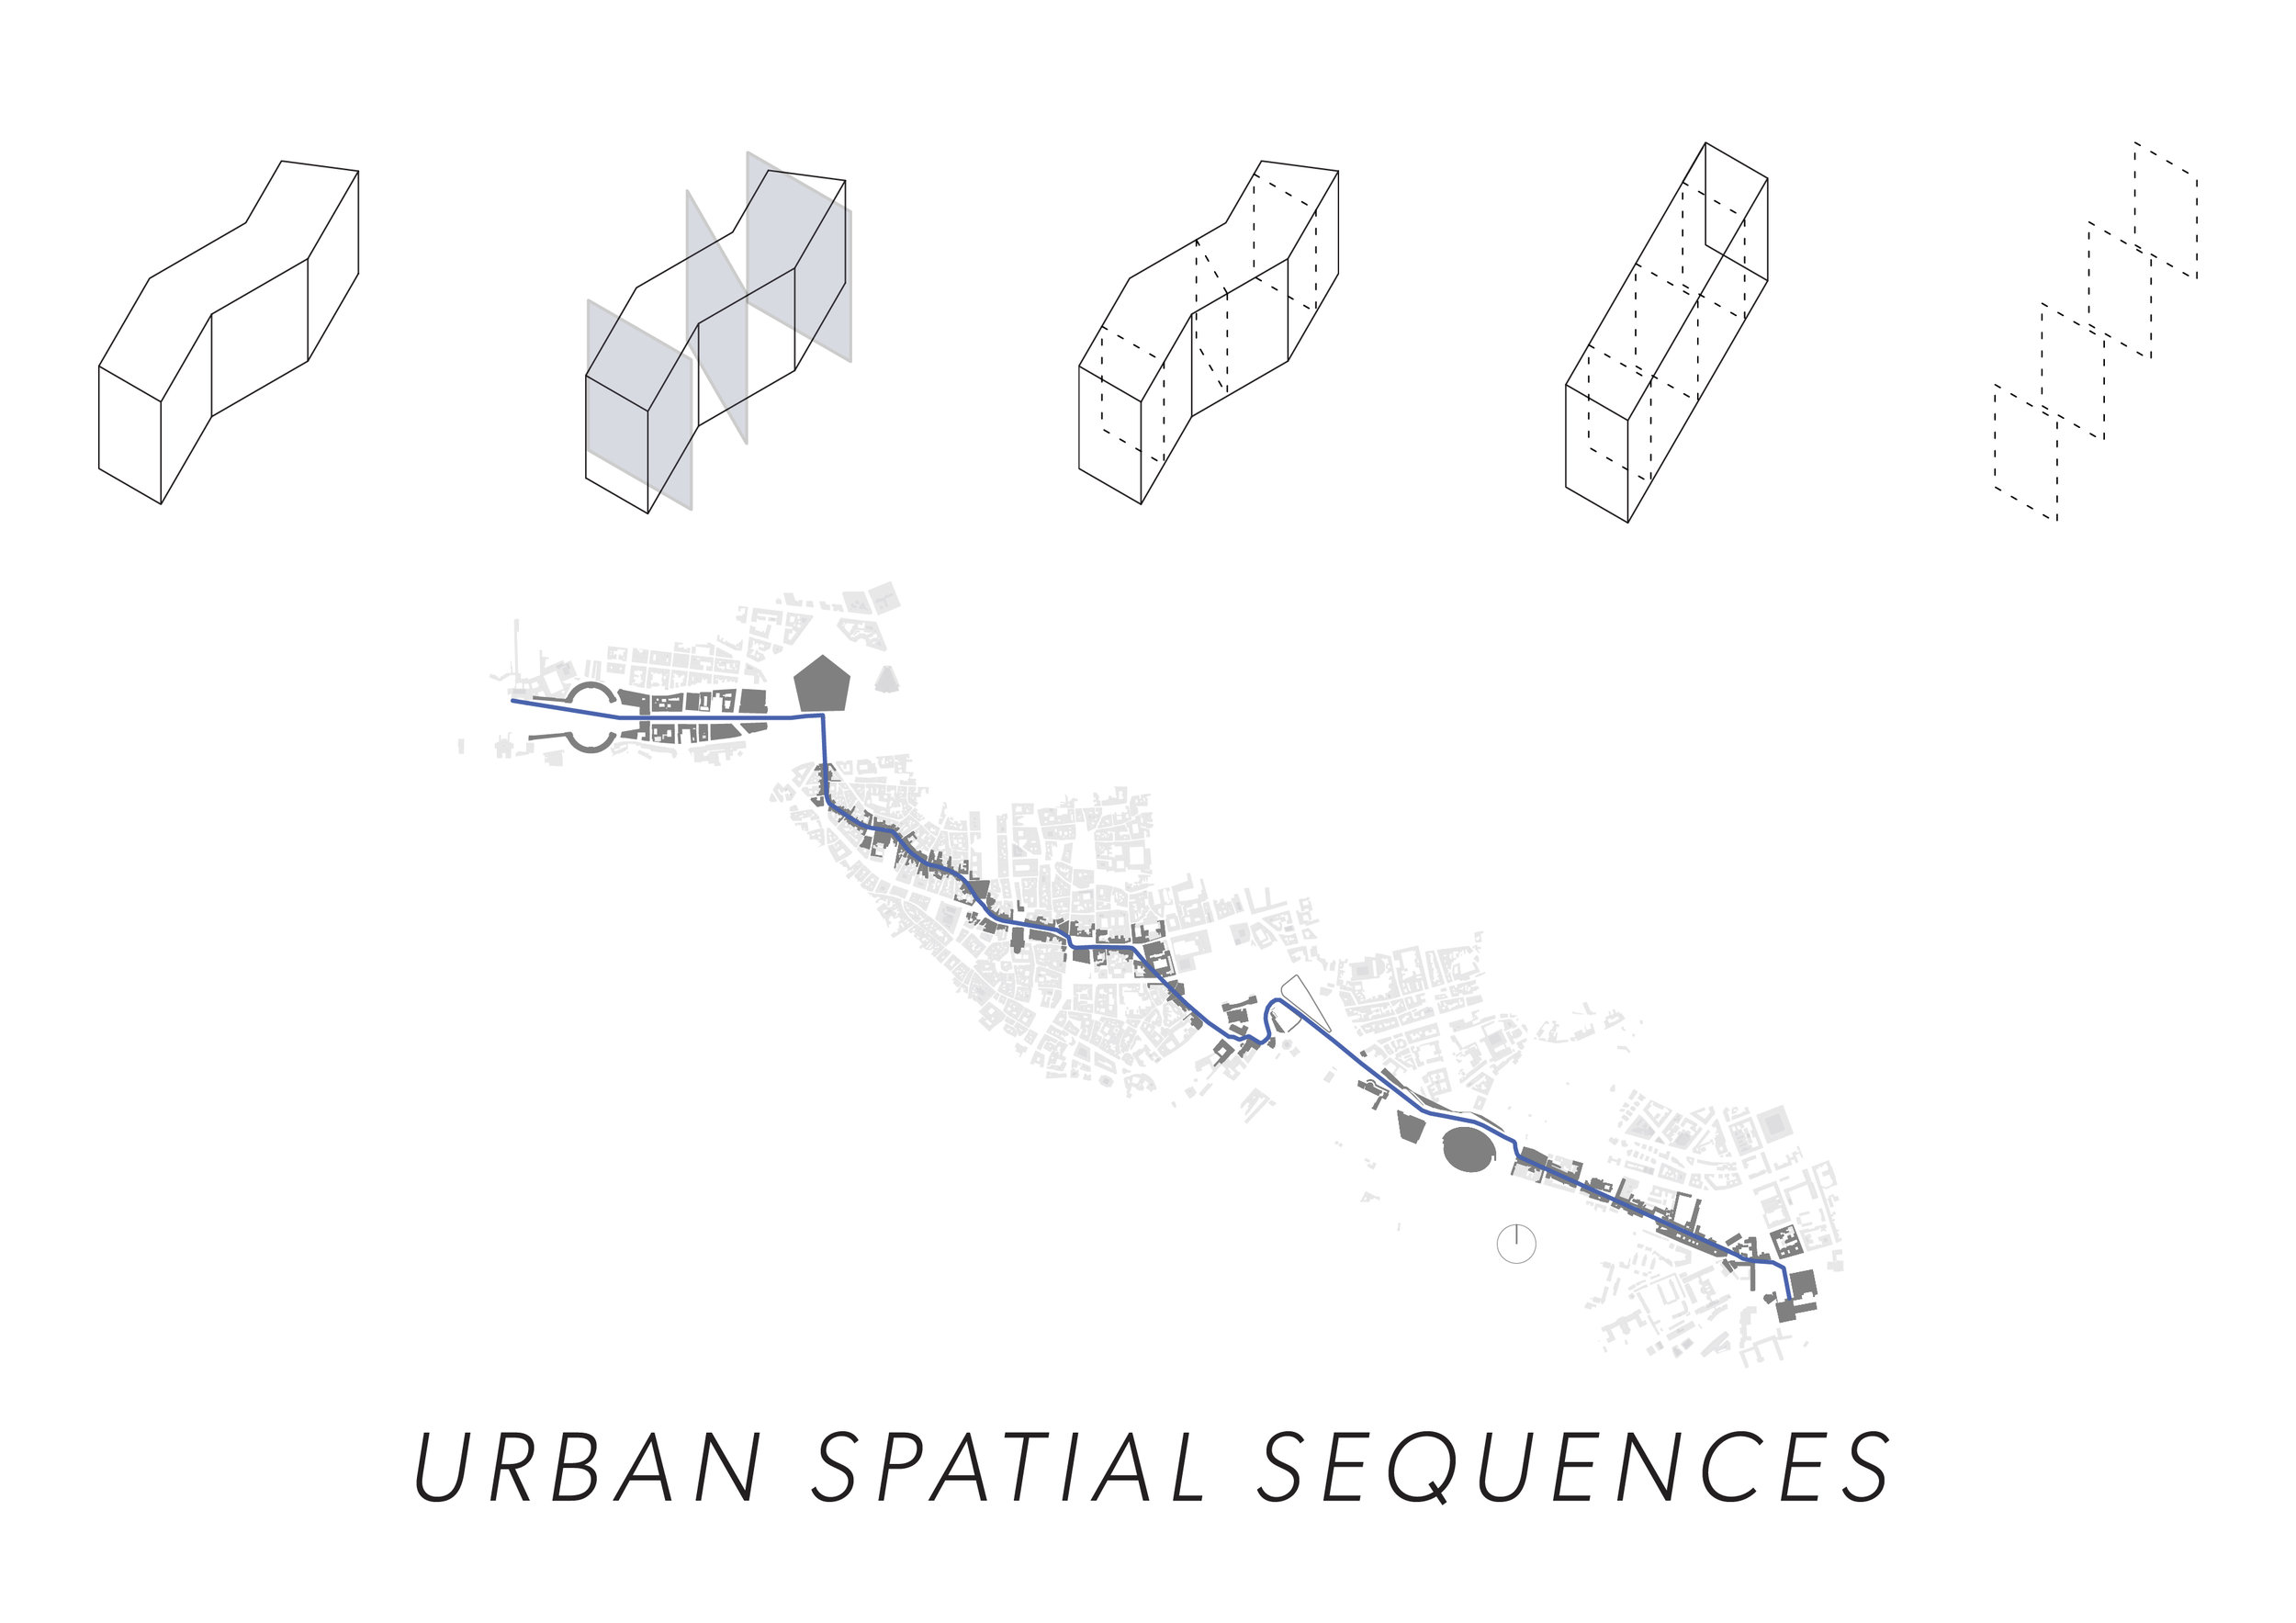 Curtis Nalley Scott_Group 3_Urban Spatial Sequences_pdf to ppt_1.jpg